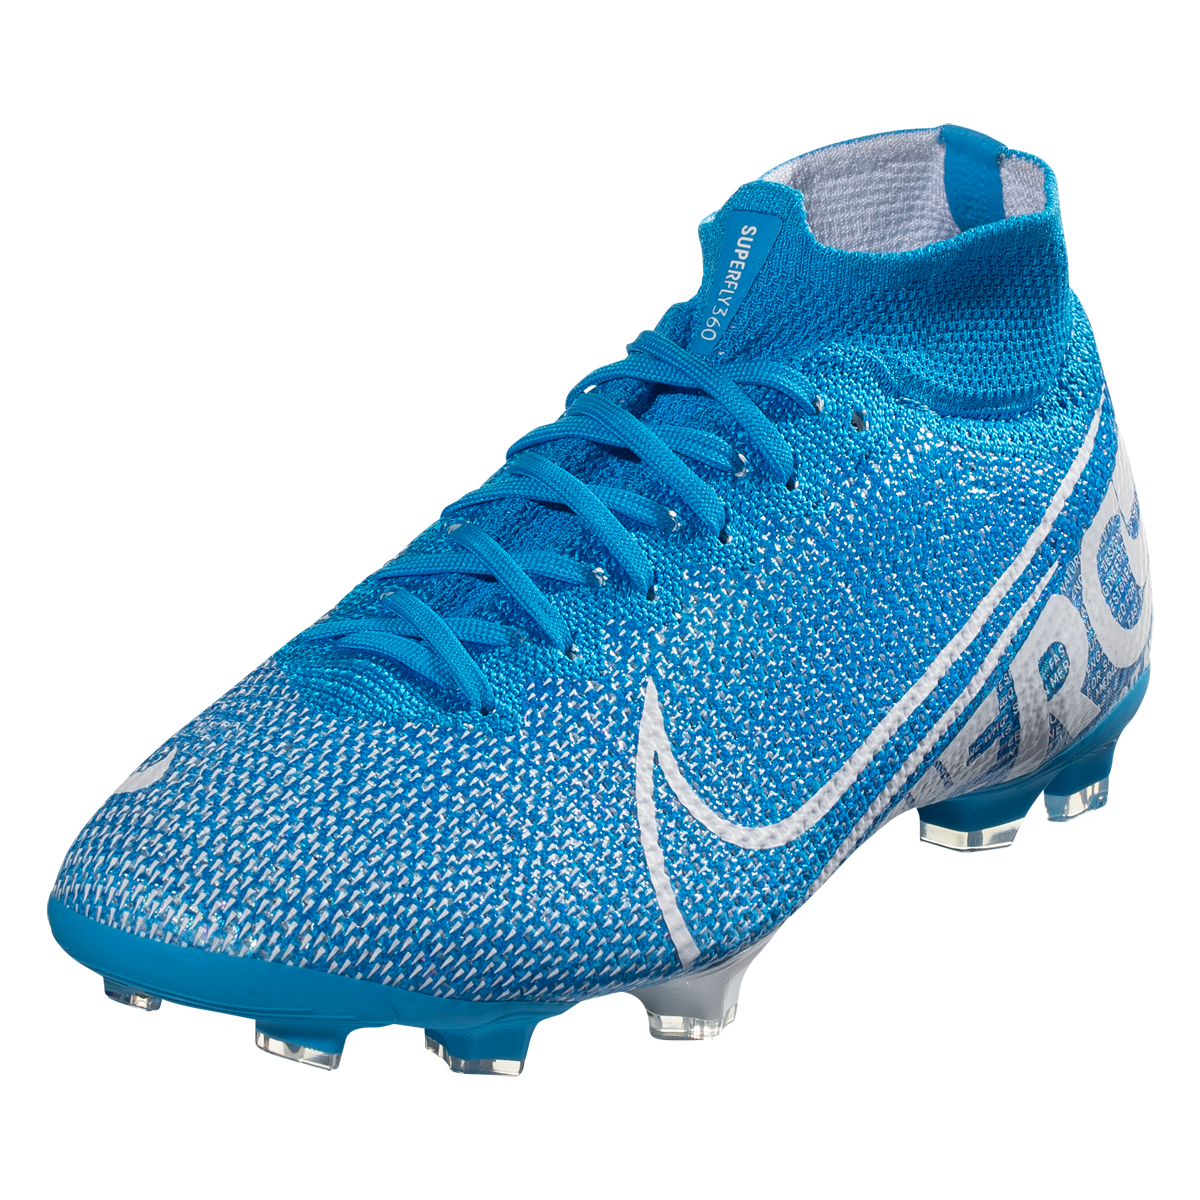 Nike Junior Mercurial Superfly 7 Elite Fg Soccer Cleat Blue White Obsidian 4 5 Soccer Boots Soccer Cleats Girls Soccer Cleats